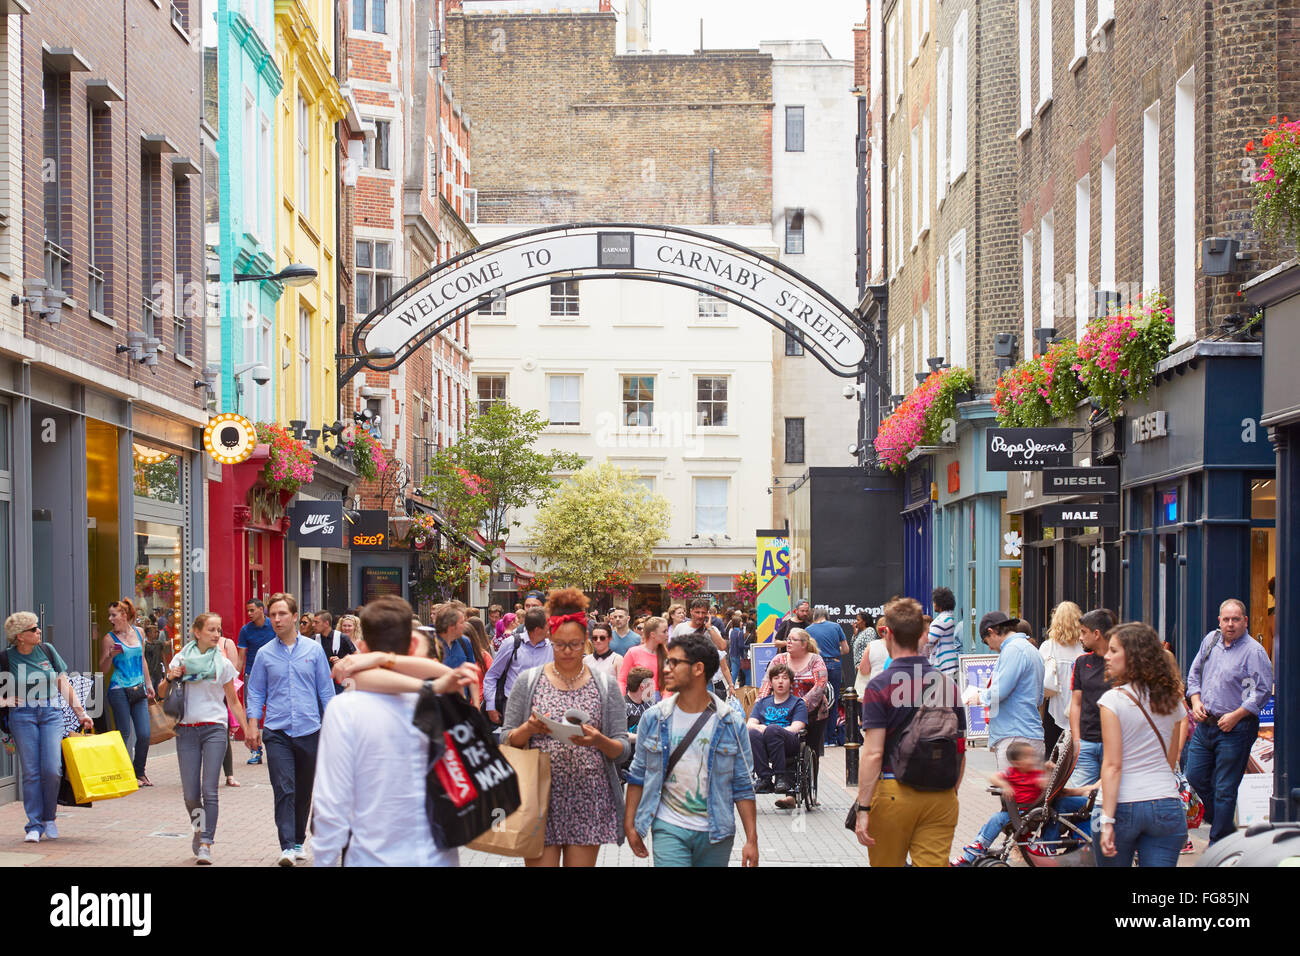 Carnaby street, famous shopping street with people in London - Stock Image